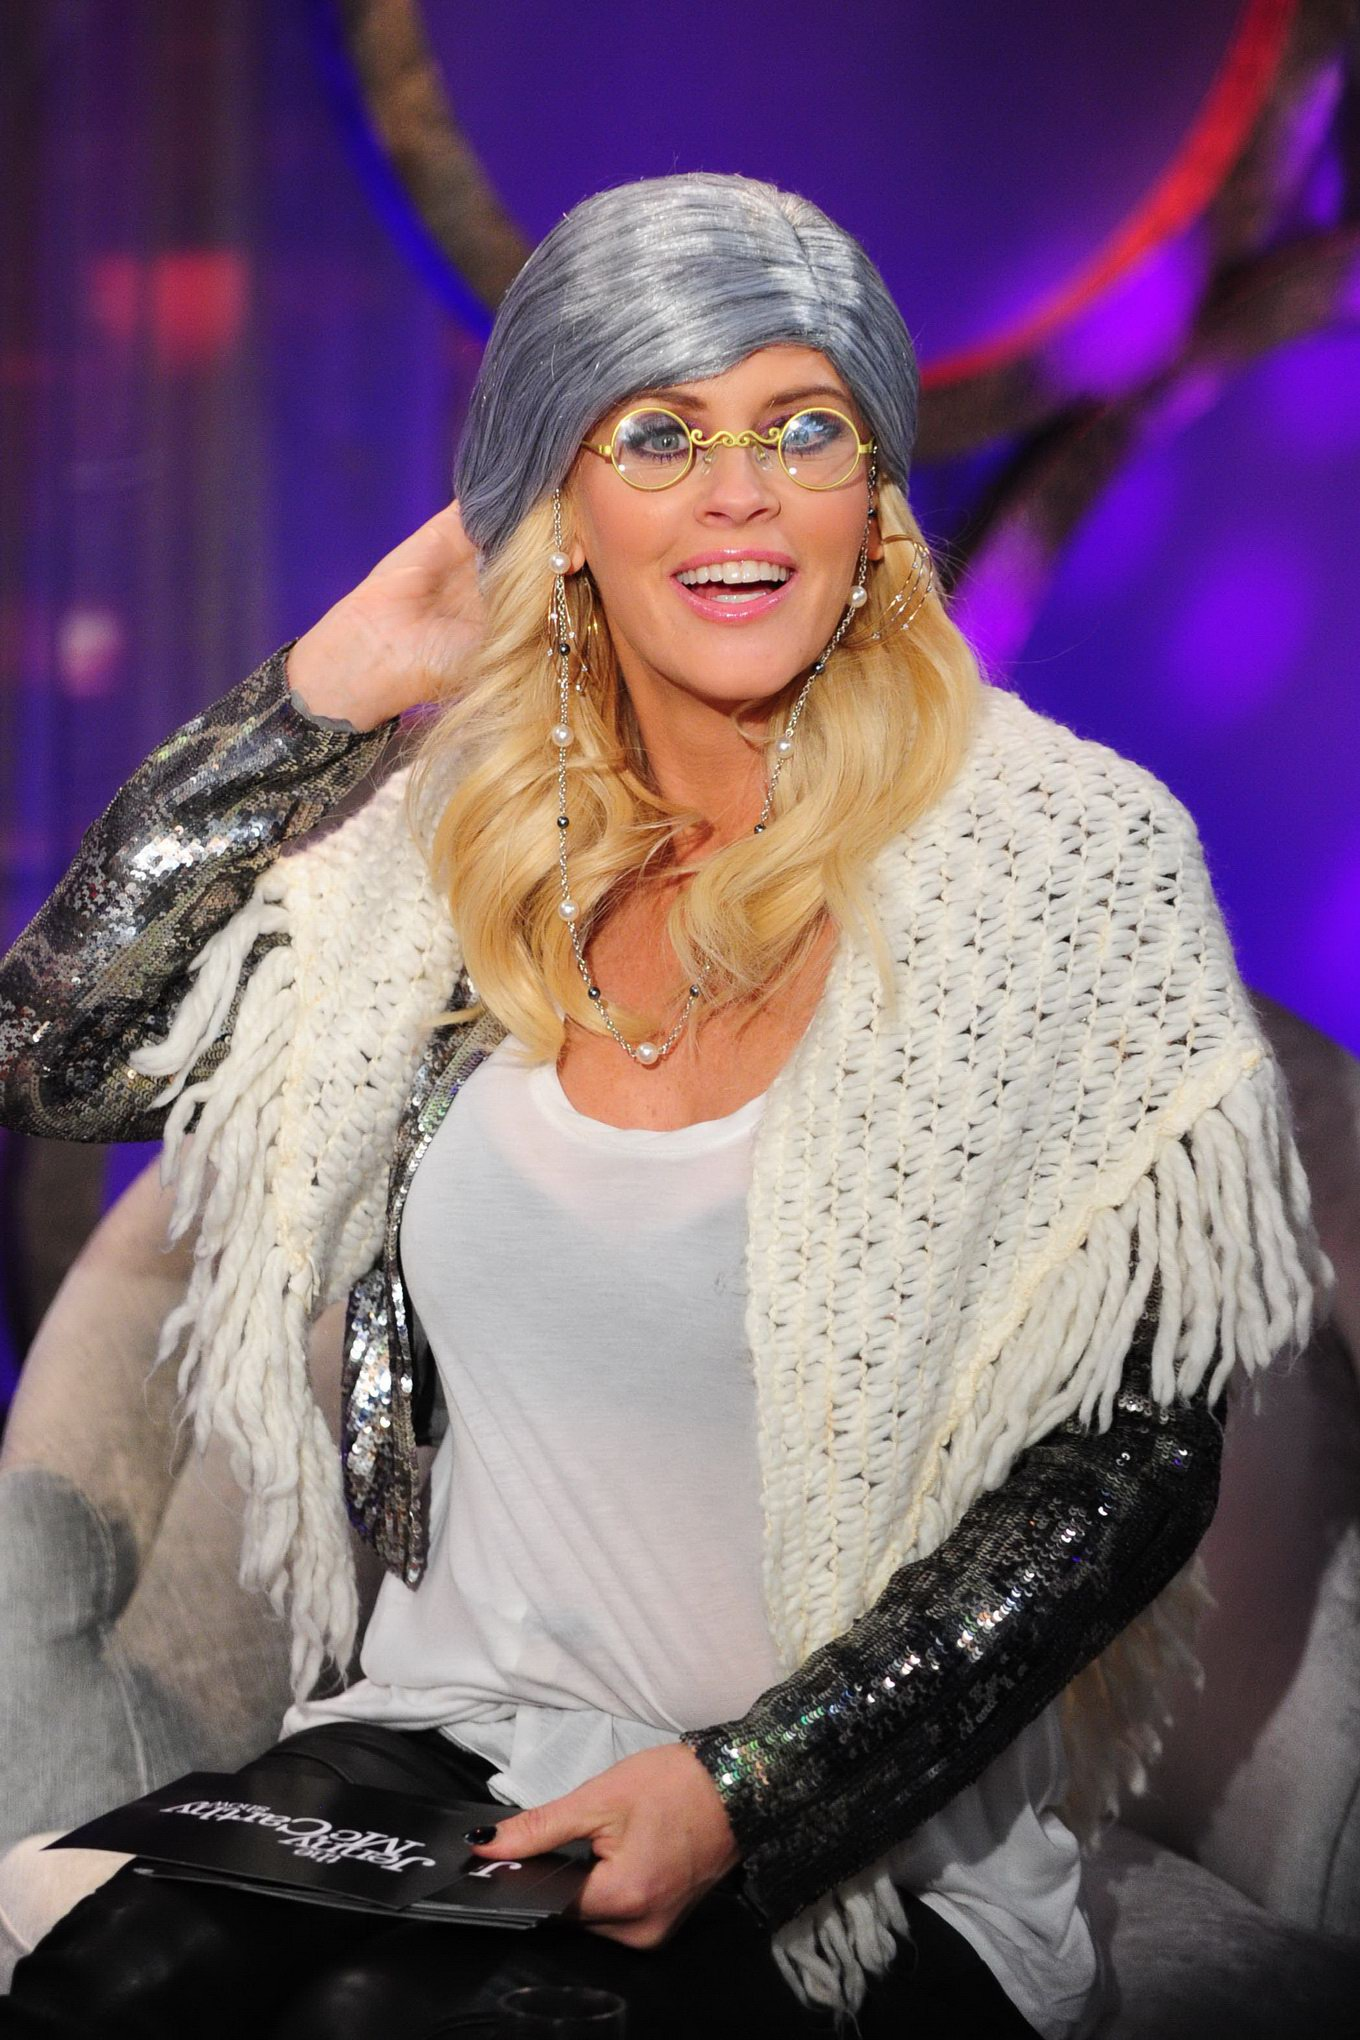 Jenny Mccarthy Groping  Getting Groped With Her Guests In Lingerie  Stockings At Her -7686